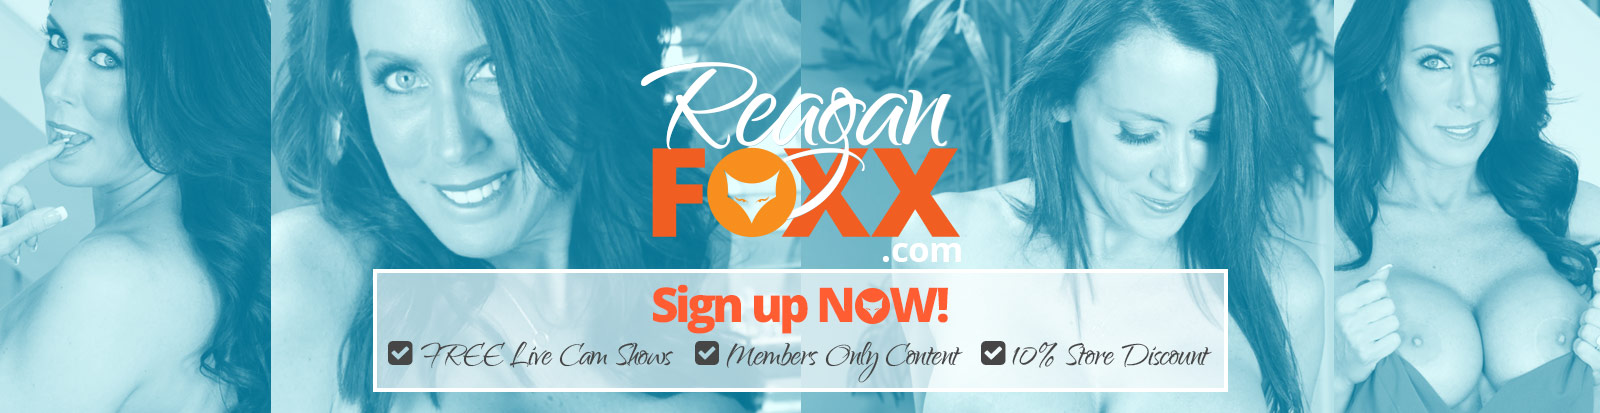 Welcome to the Reagan Foxx Store official on Demand theatre and store.